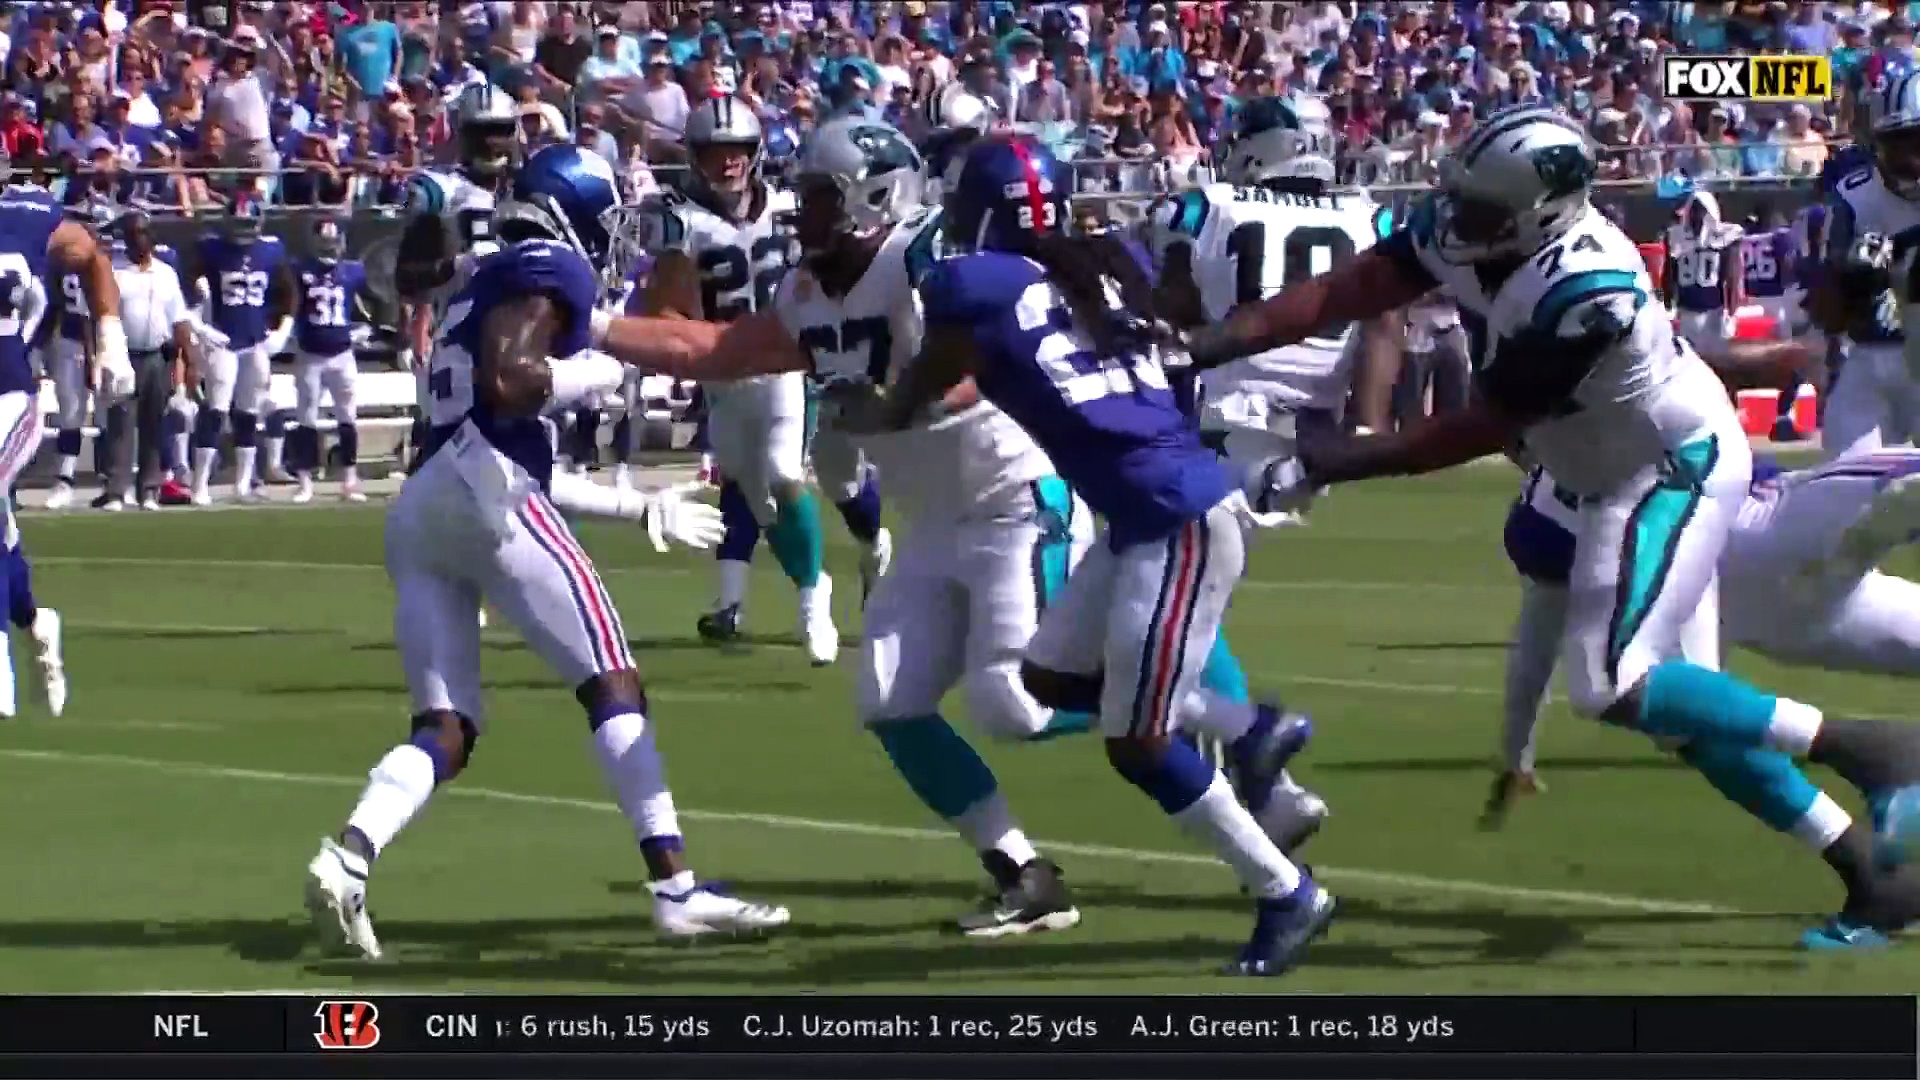 Giants vs. Panthers Week 5 Highlights – NFL 2018